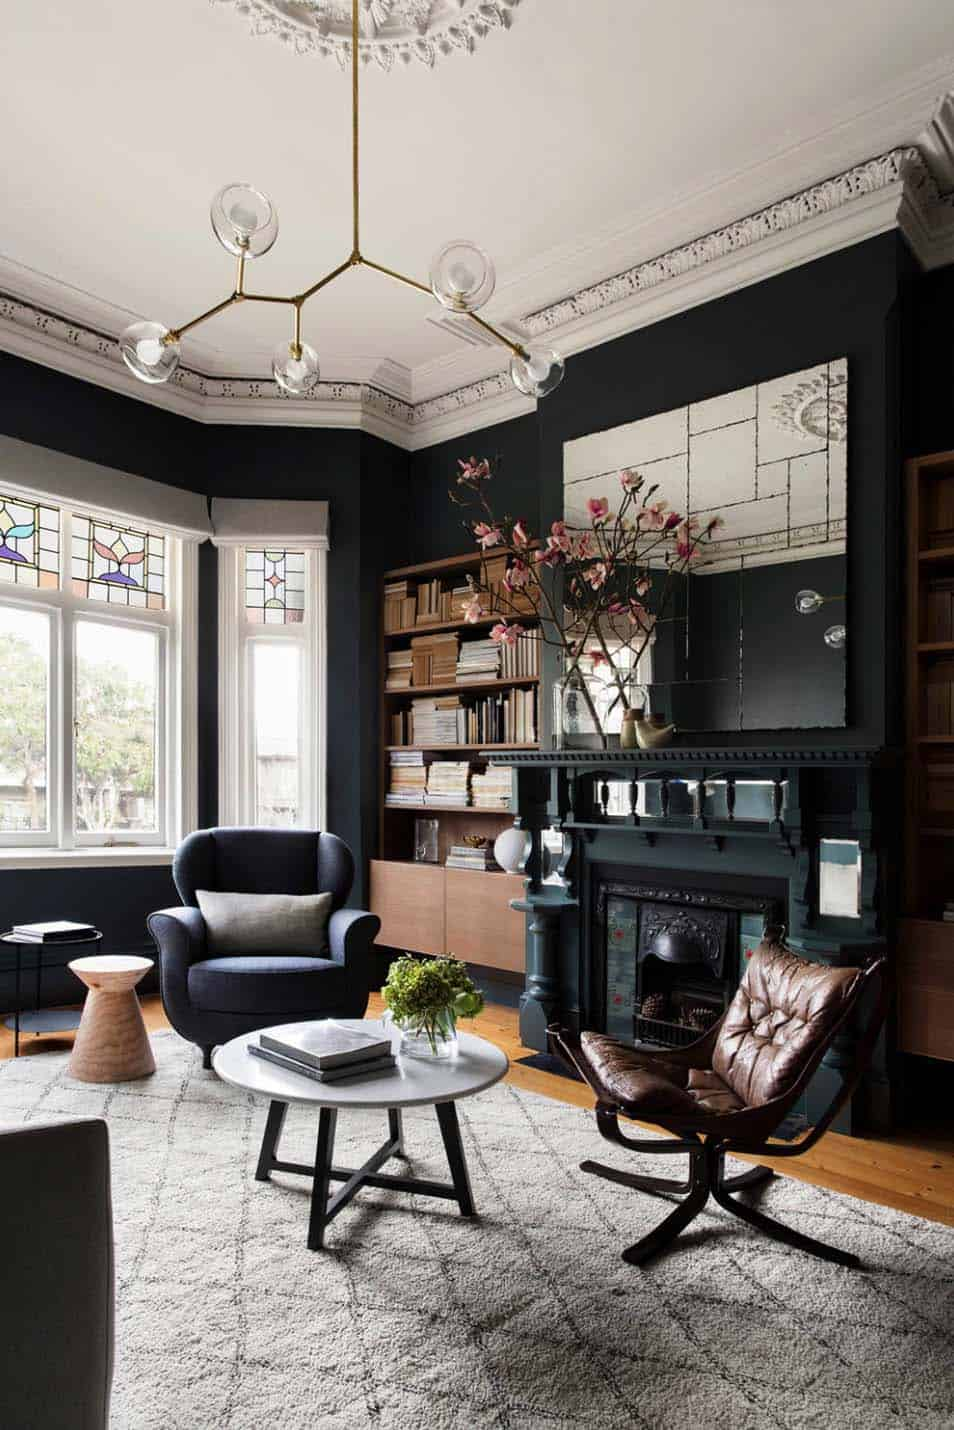 Pictures Of Interior Design Living Rooms: 28 Gorgeous Living Rooms With Black Walls That Create Cozy